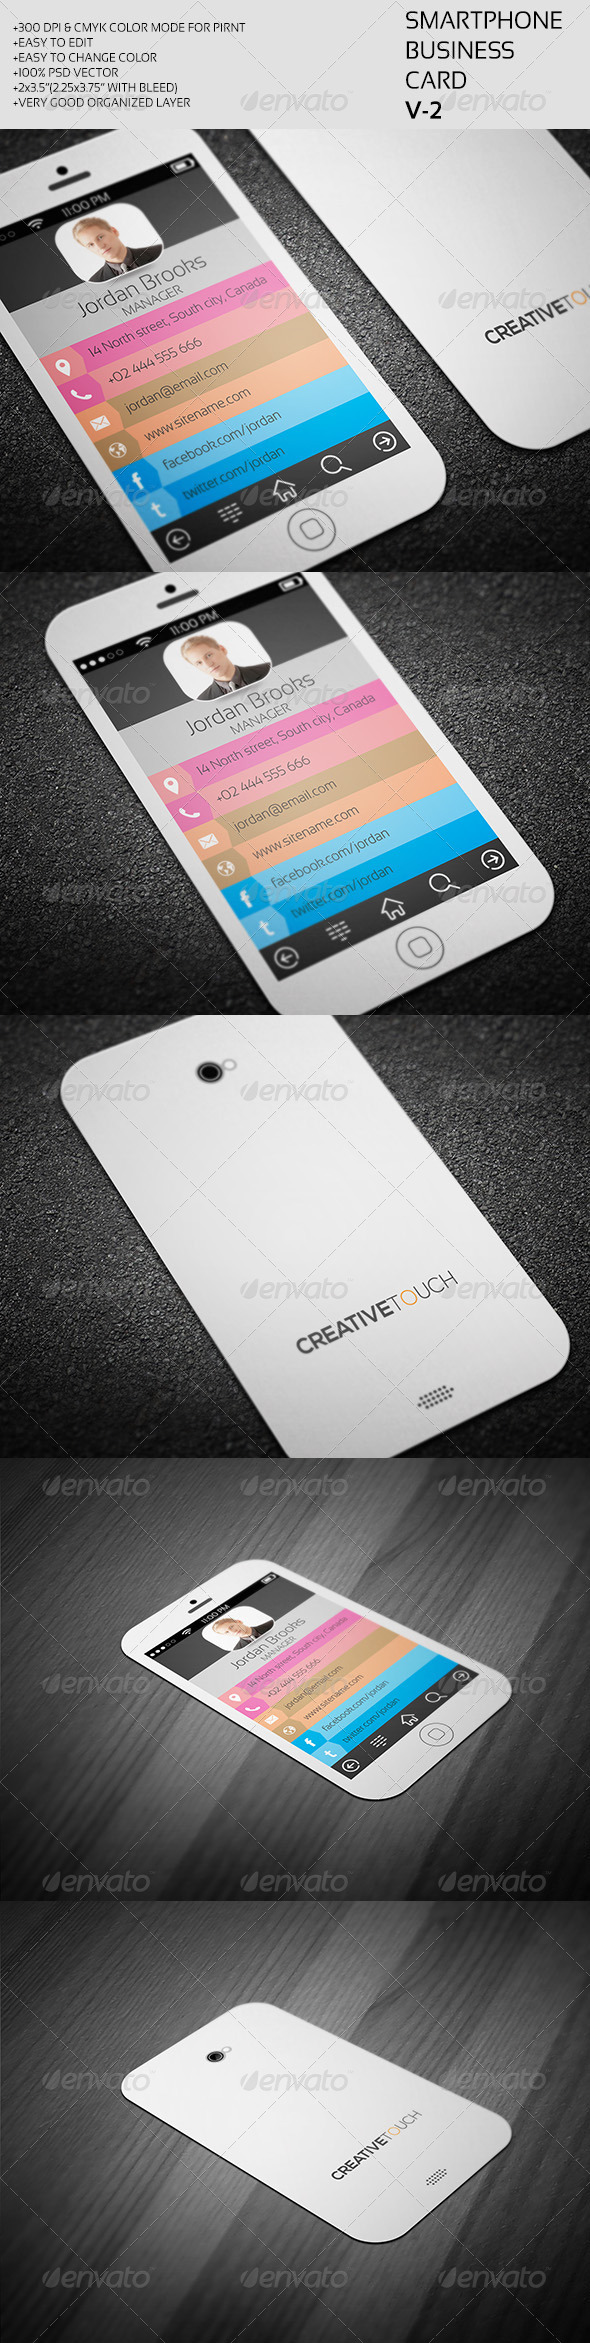 GraphicRiver Smartphone Business Card V-2 7383951